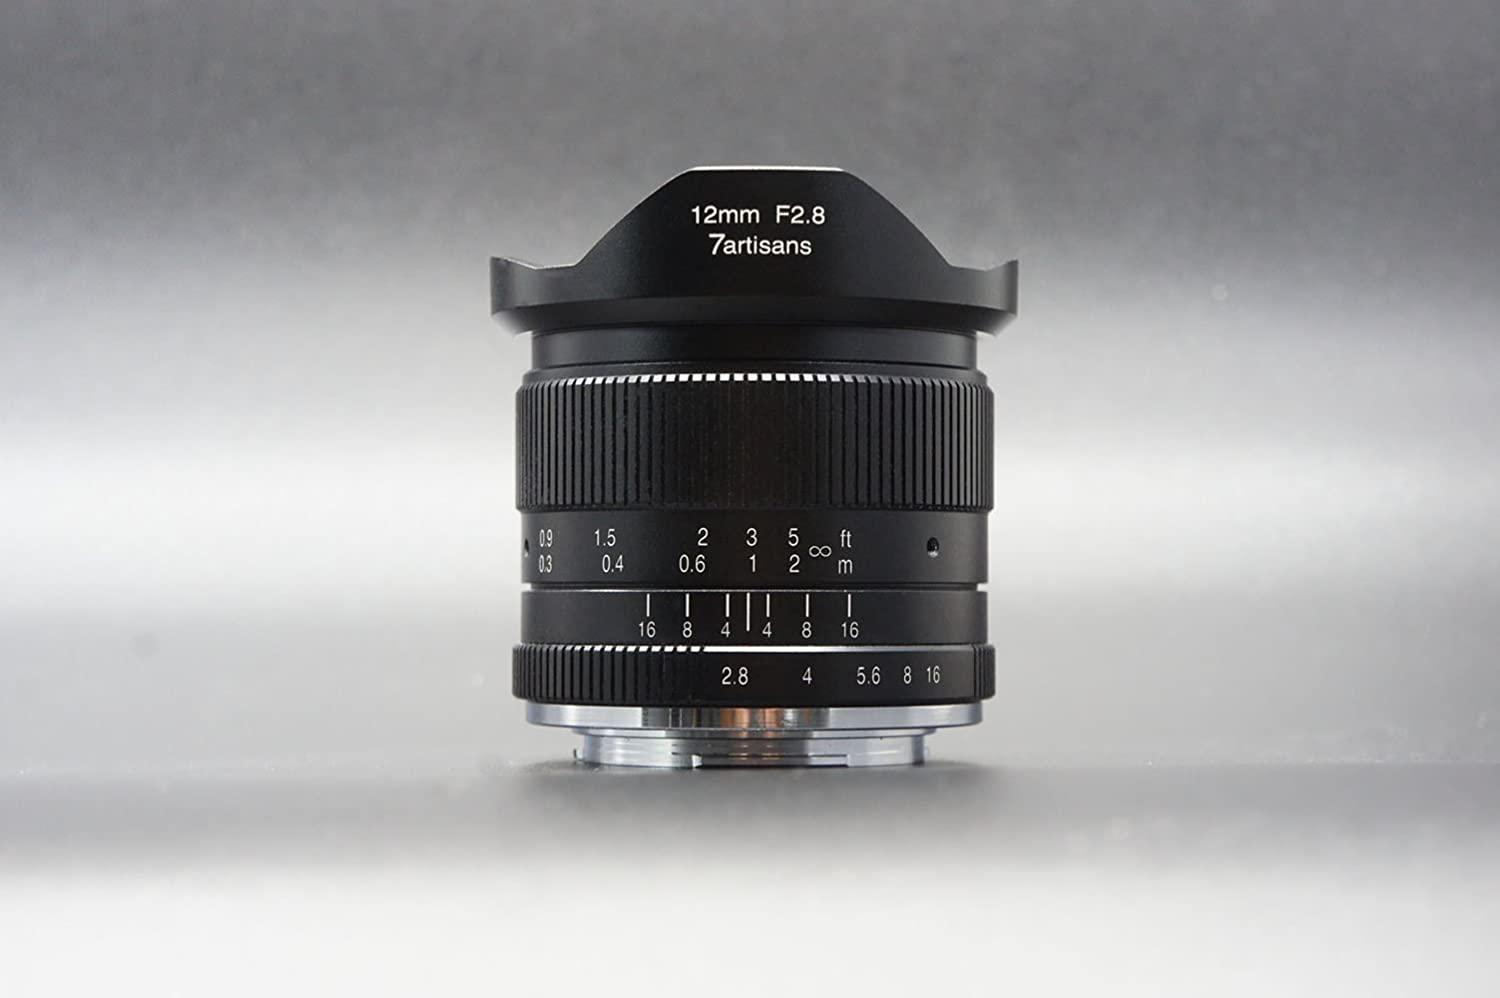 7artisans 12mm F2.8 APS-C Ultra Wide Angle Lens for Canon EOS M EF-M Mount Mirrorless Camera M1 M2 M3 M5 M6 M10 Manual Focus Prime Fixed Lens